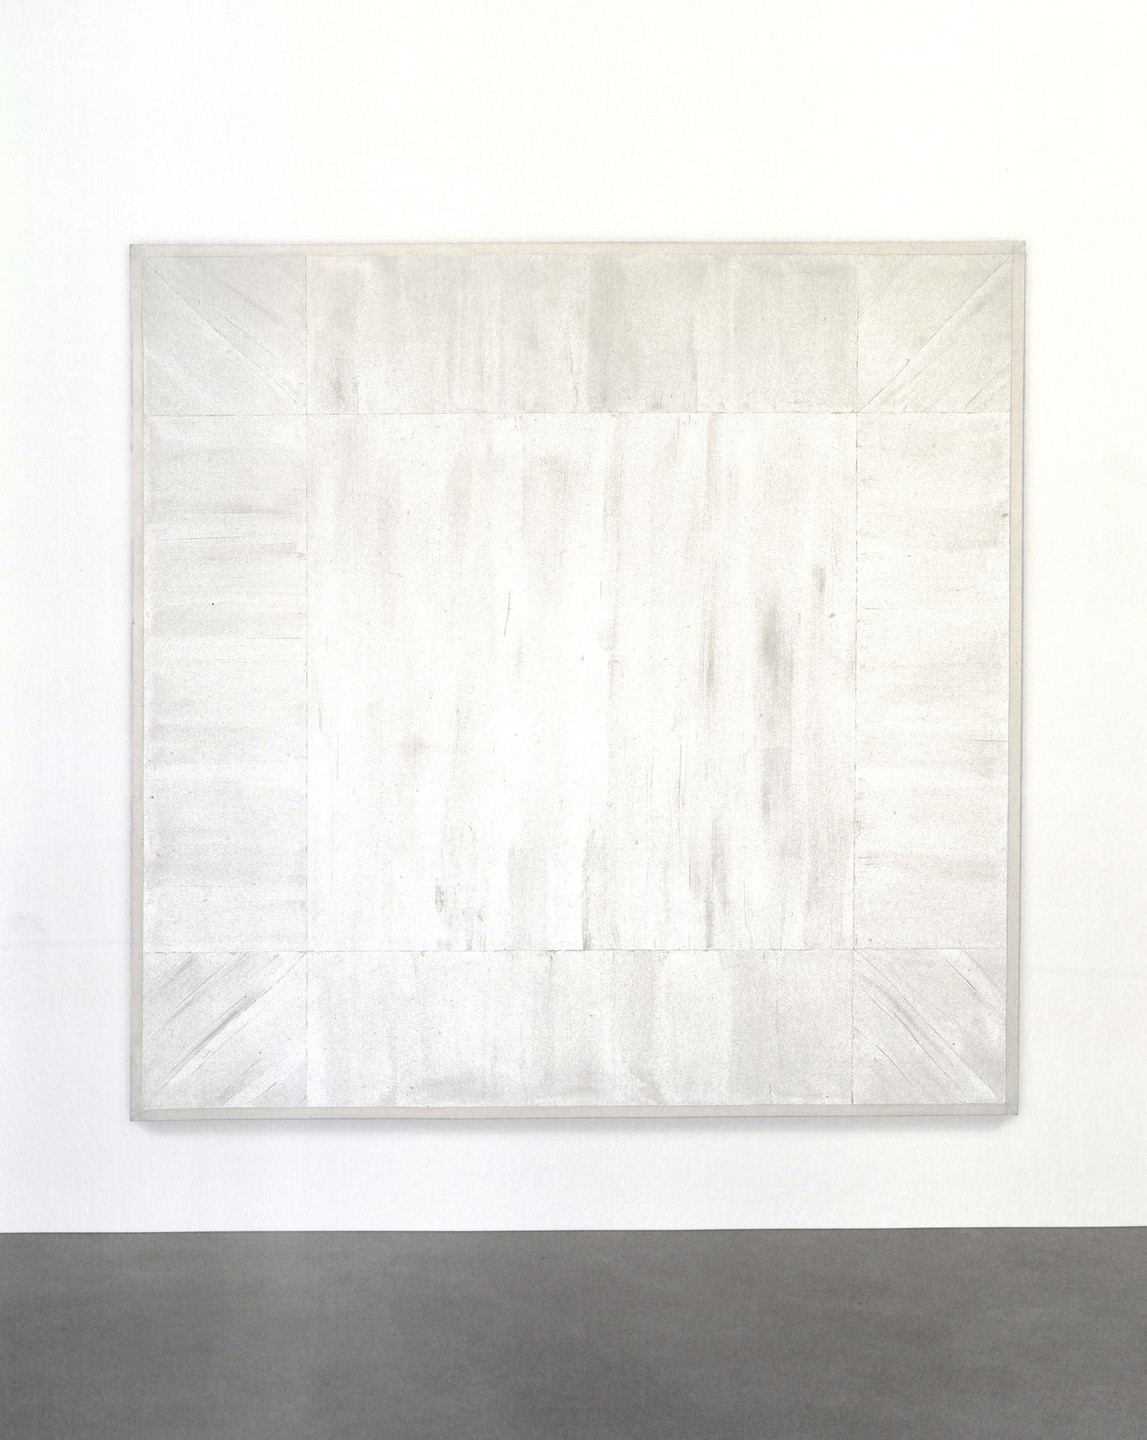 Mary Corse. Untitled (First White Light Series). 1968